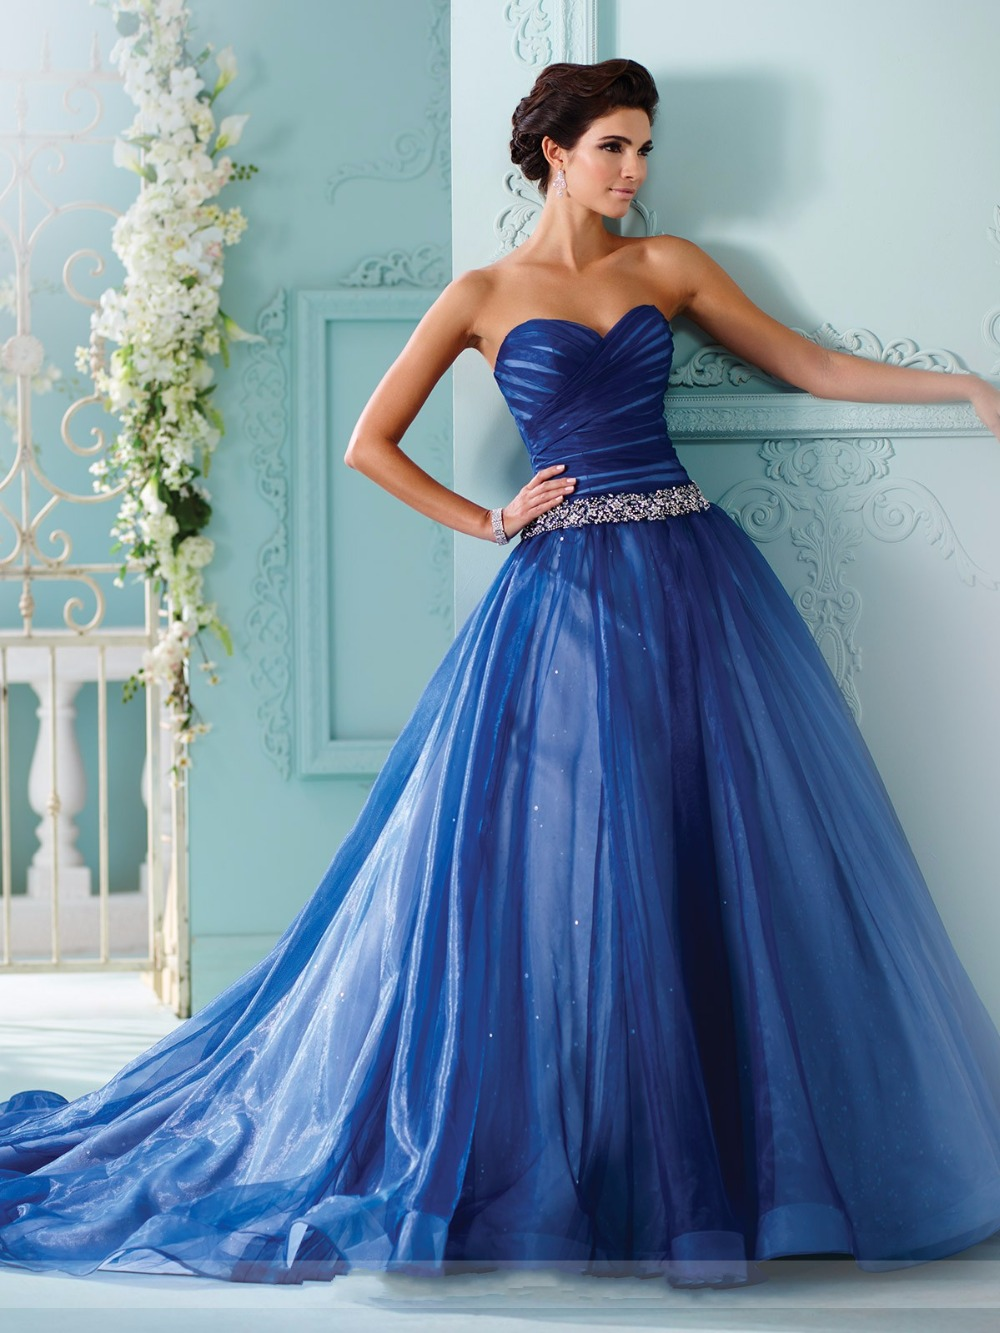 Royal Blue Blushing Pink Colorful Ball Gown Wedding Dresses With ...